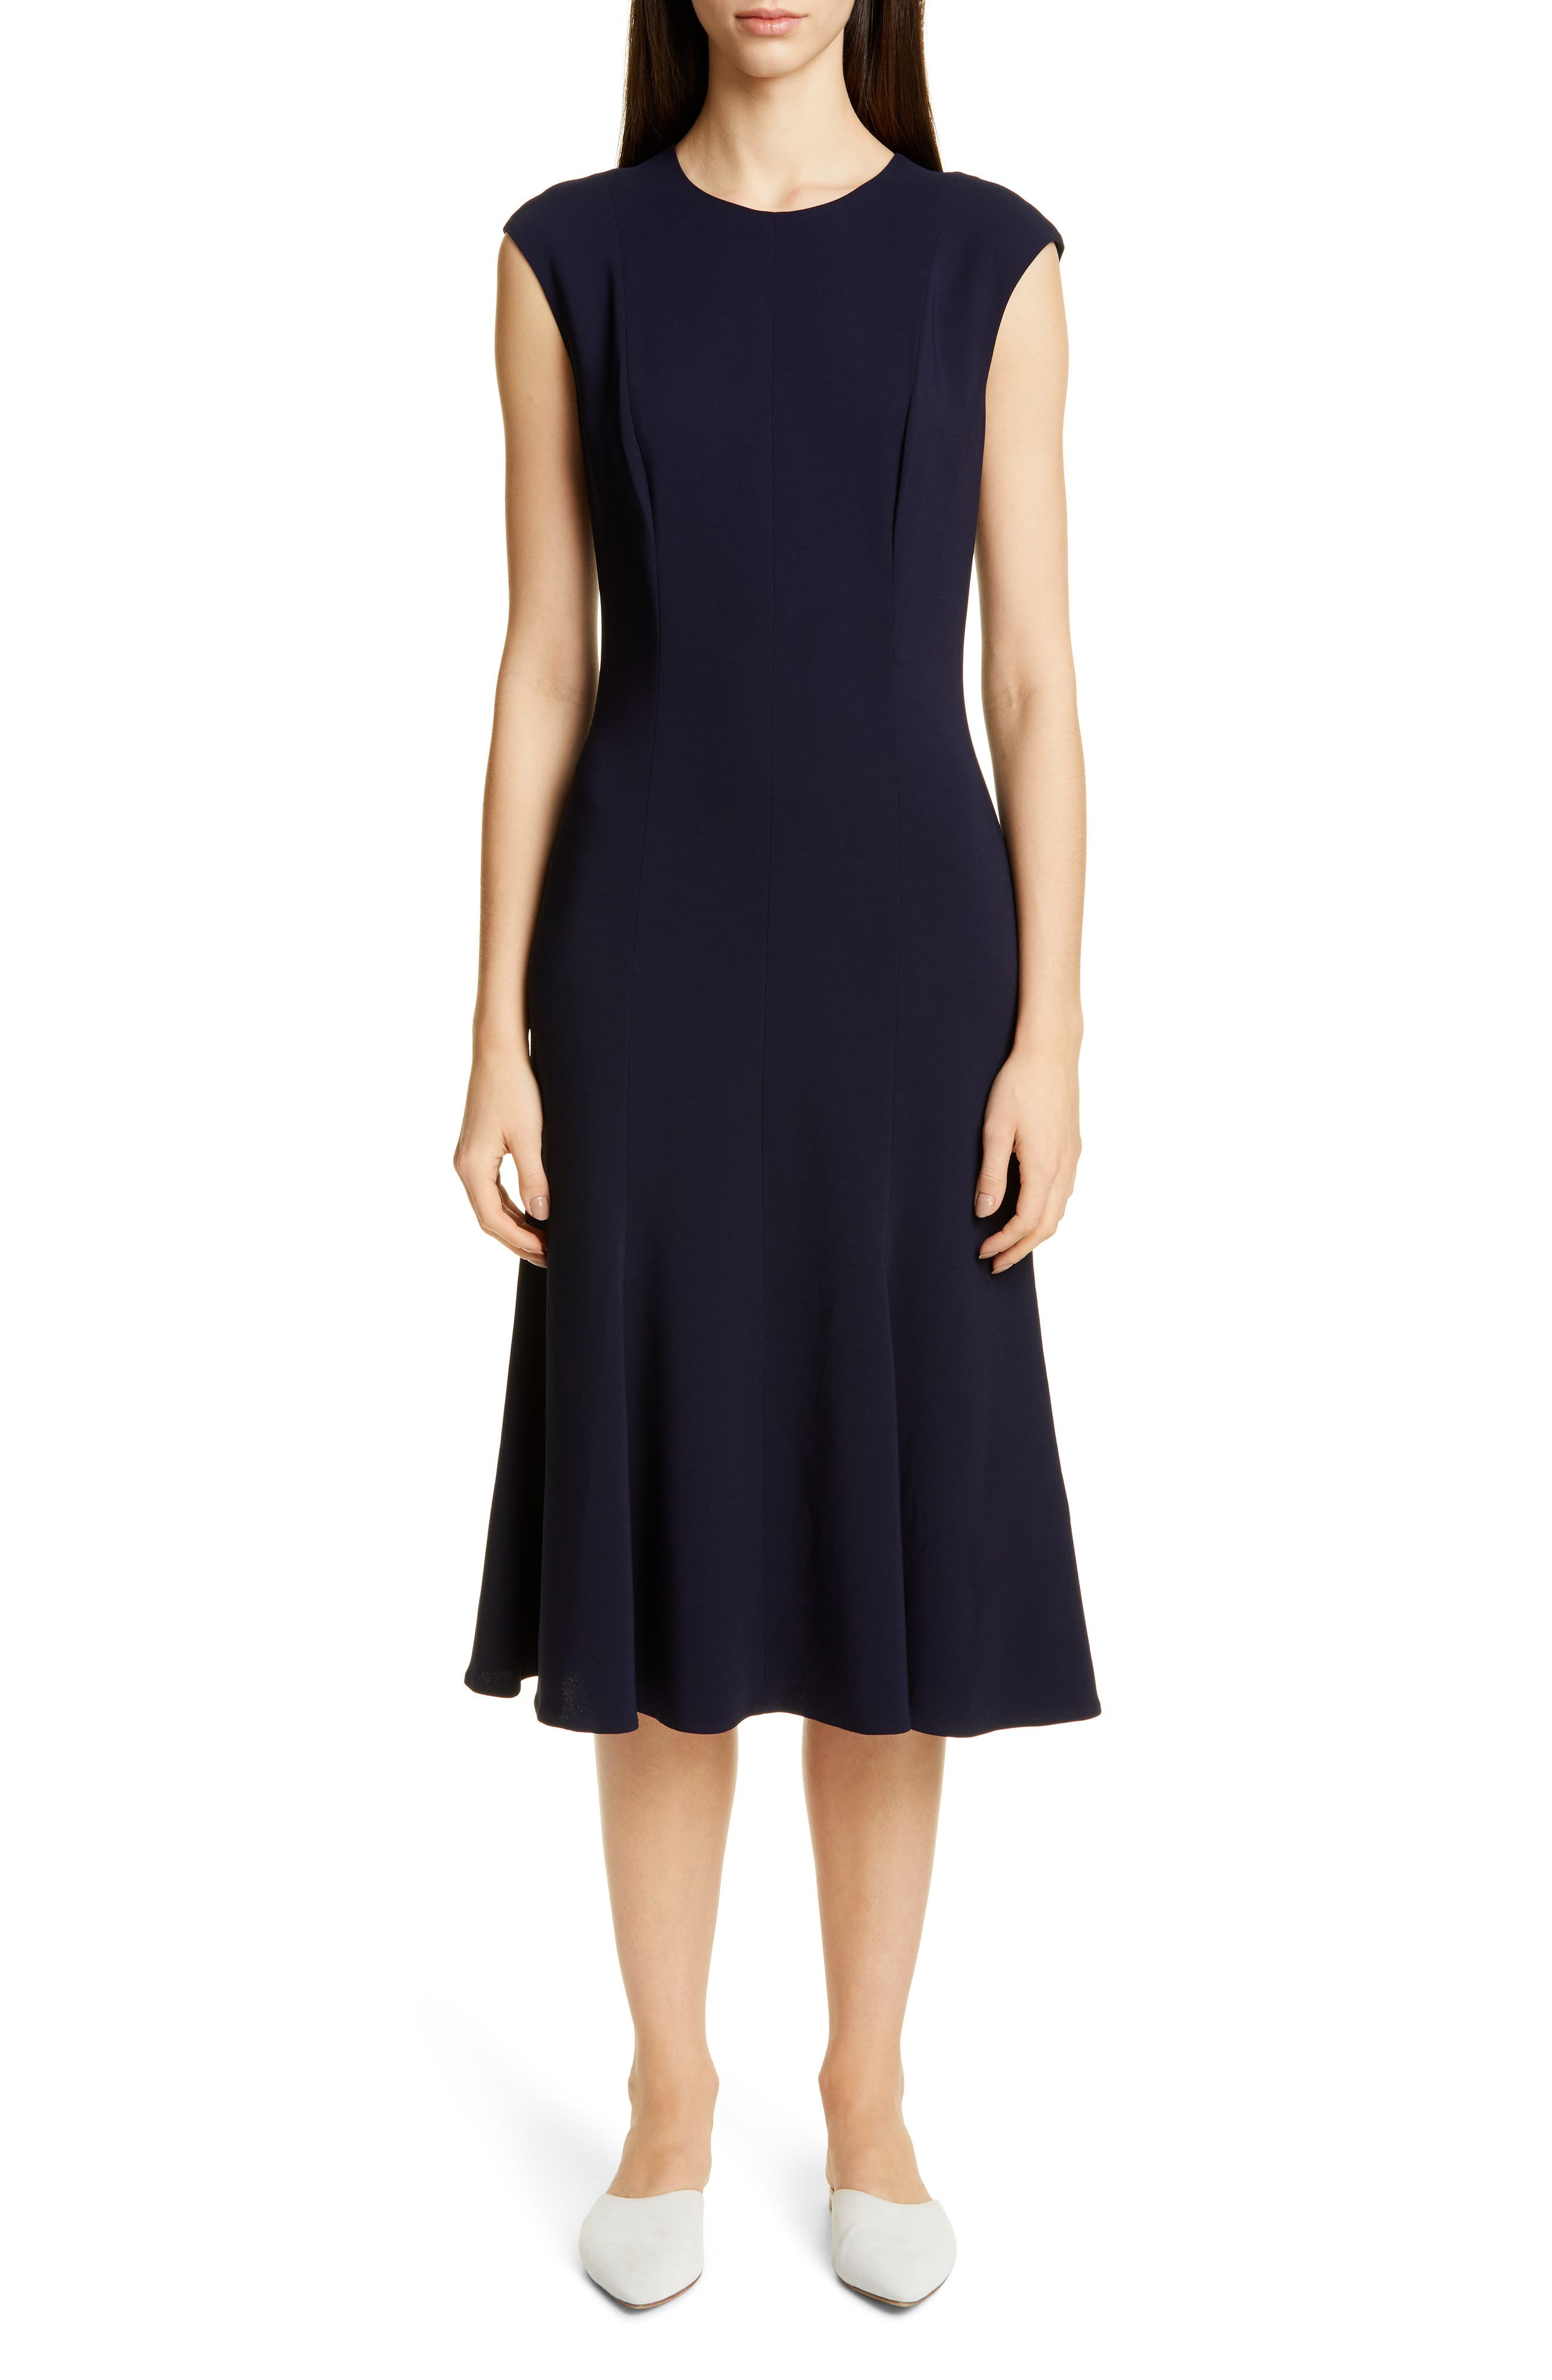 St. John Collection Stretch Cady Fit & Flare Dress, (similar to 1) - Blue